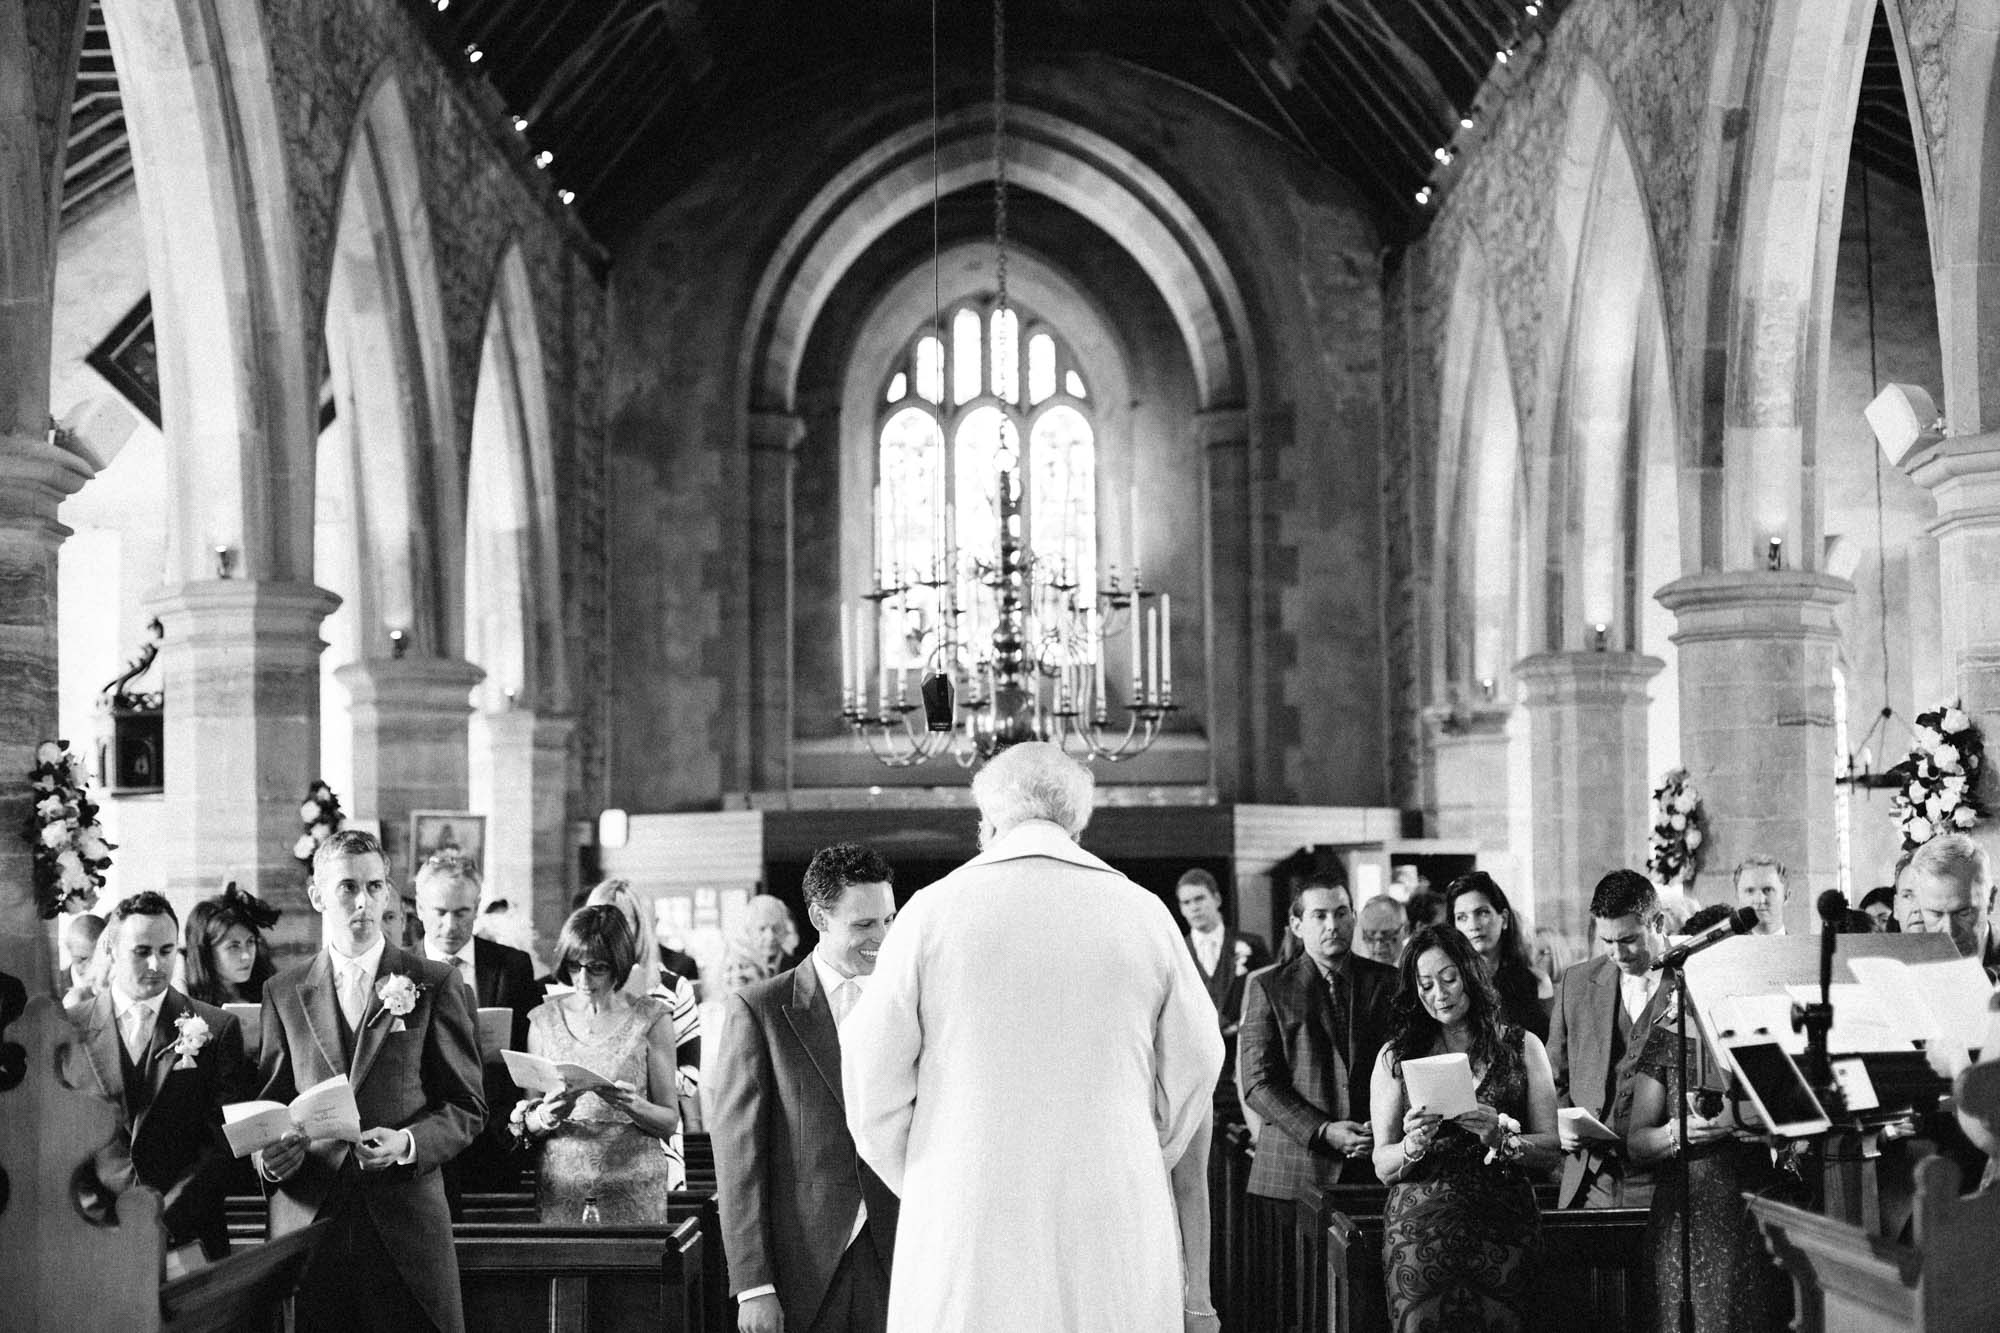 Wedding congregation during wedding service in Chiddingstone church